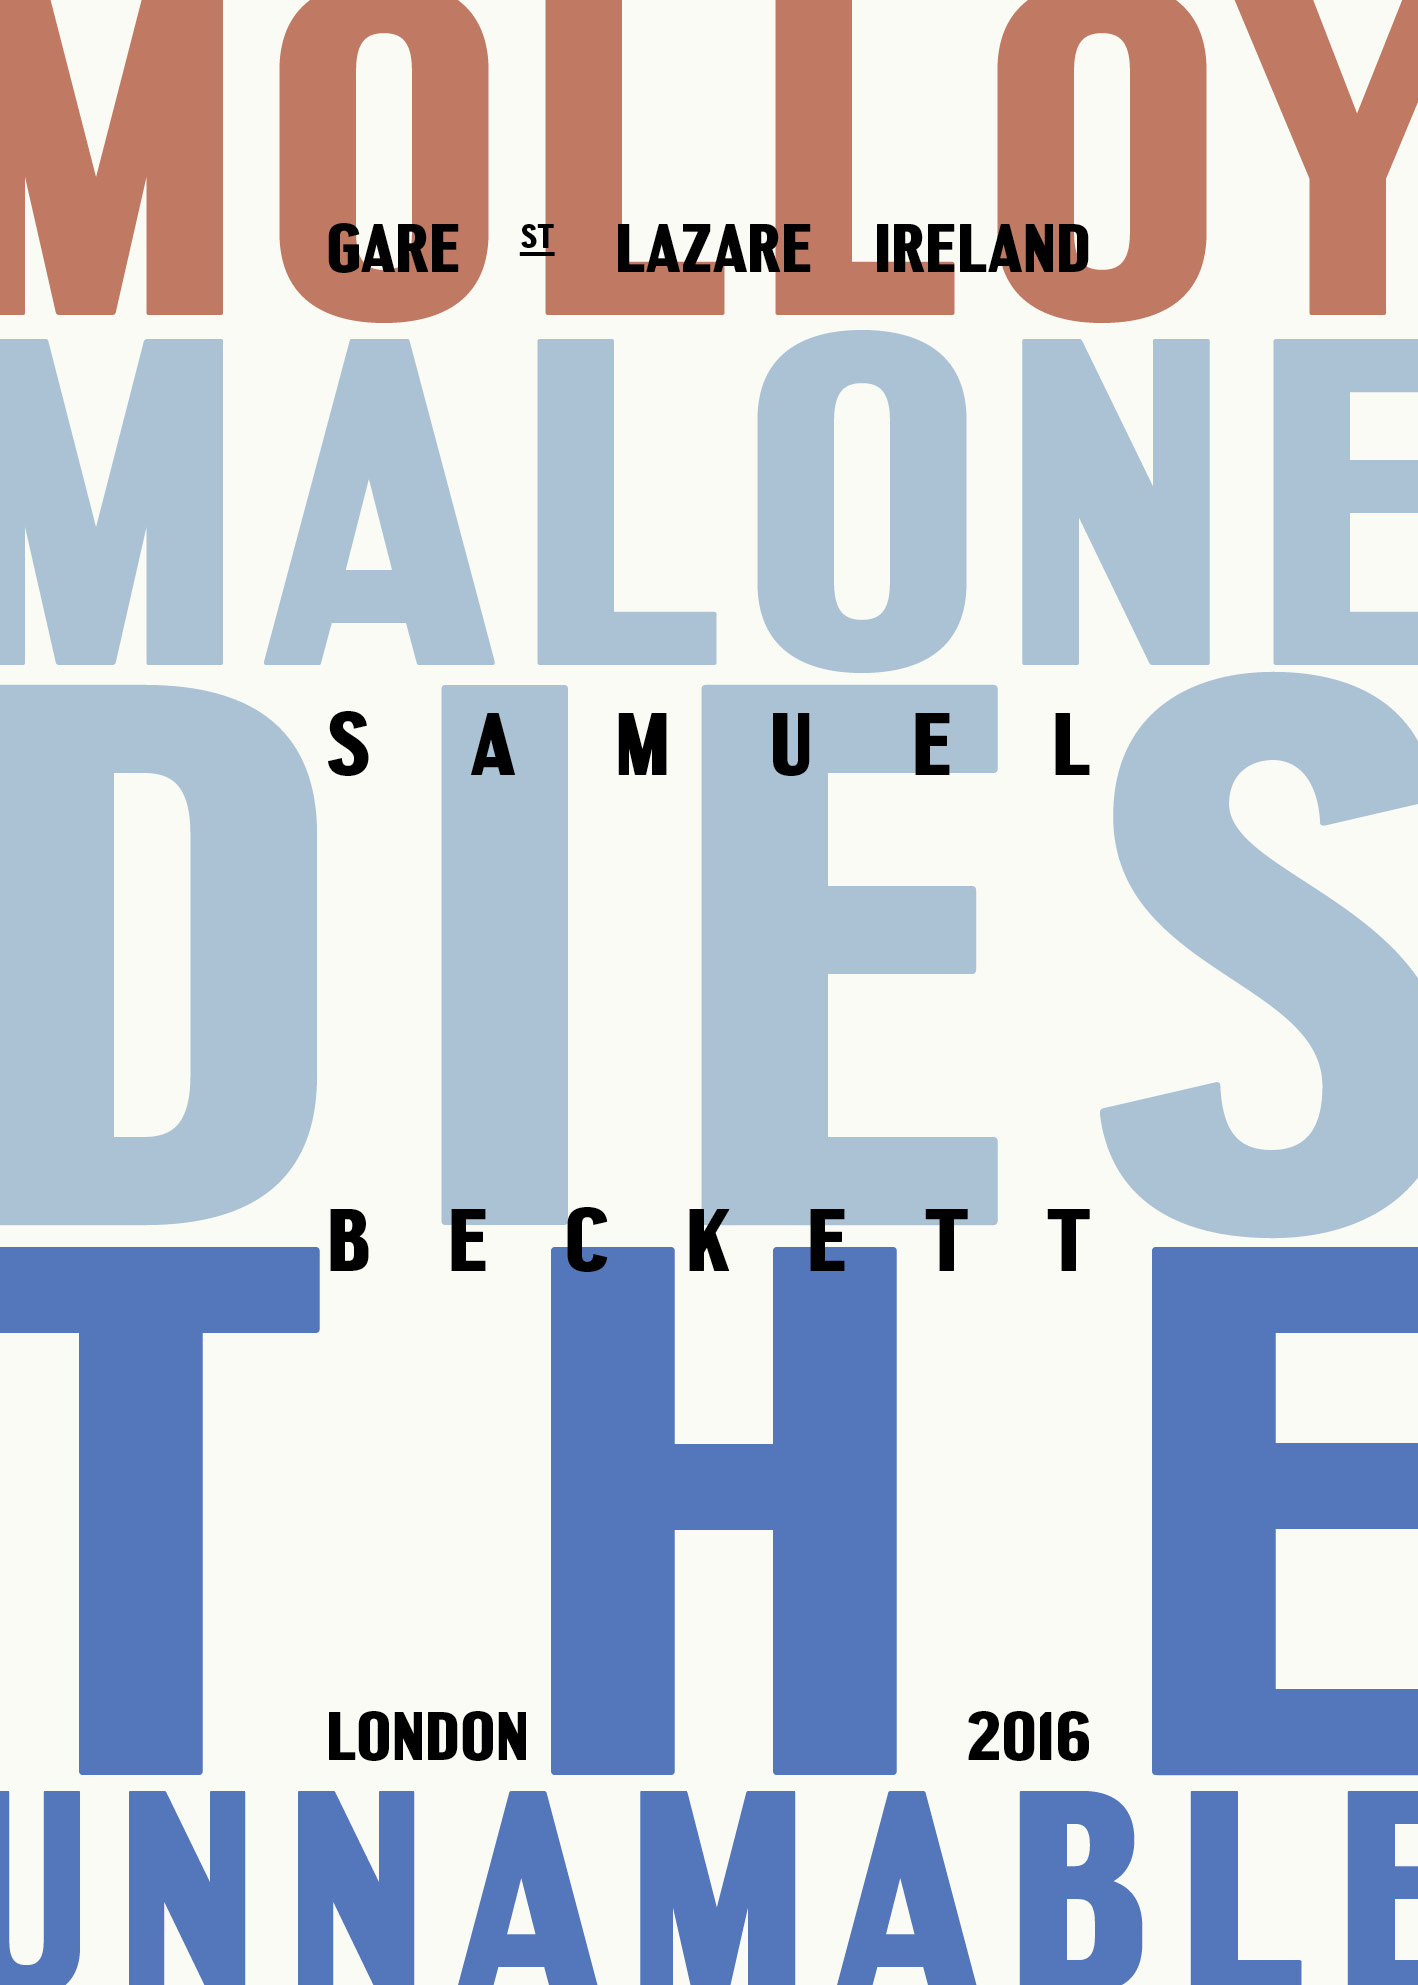 Beckett_Molloy_Malone_Unname_London.jpg